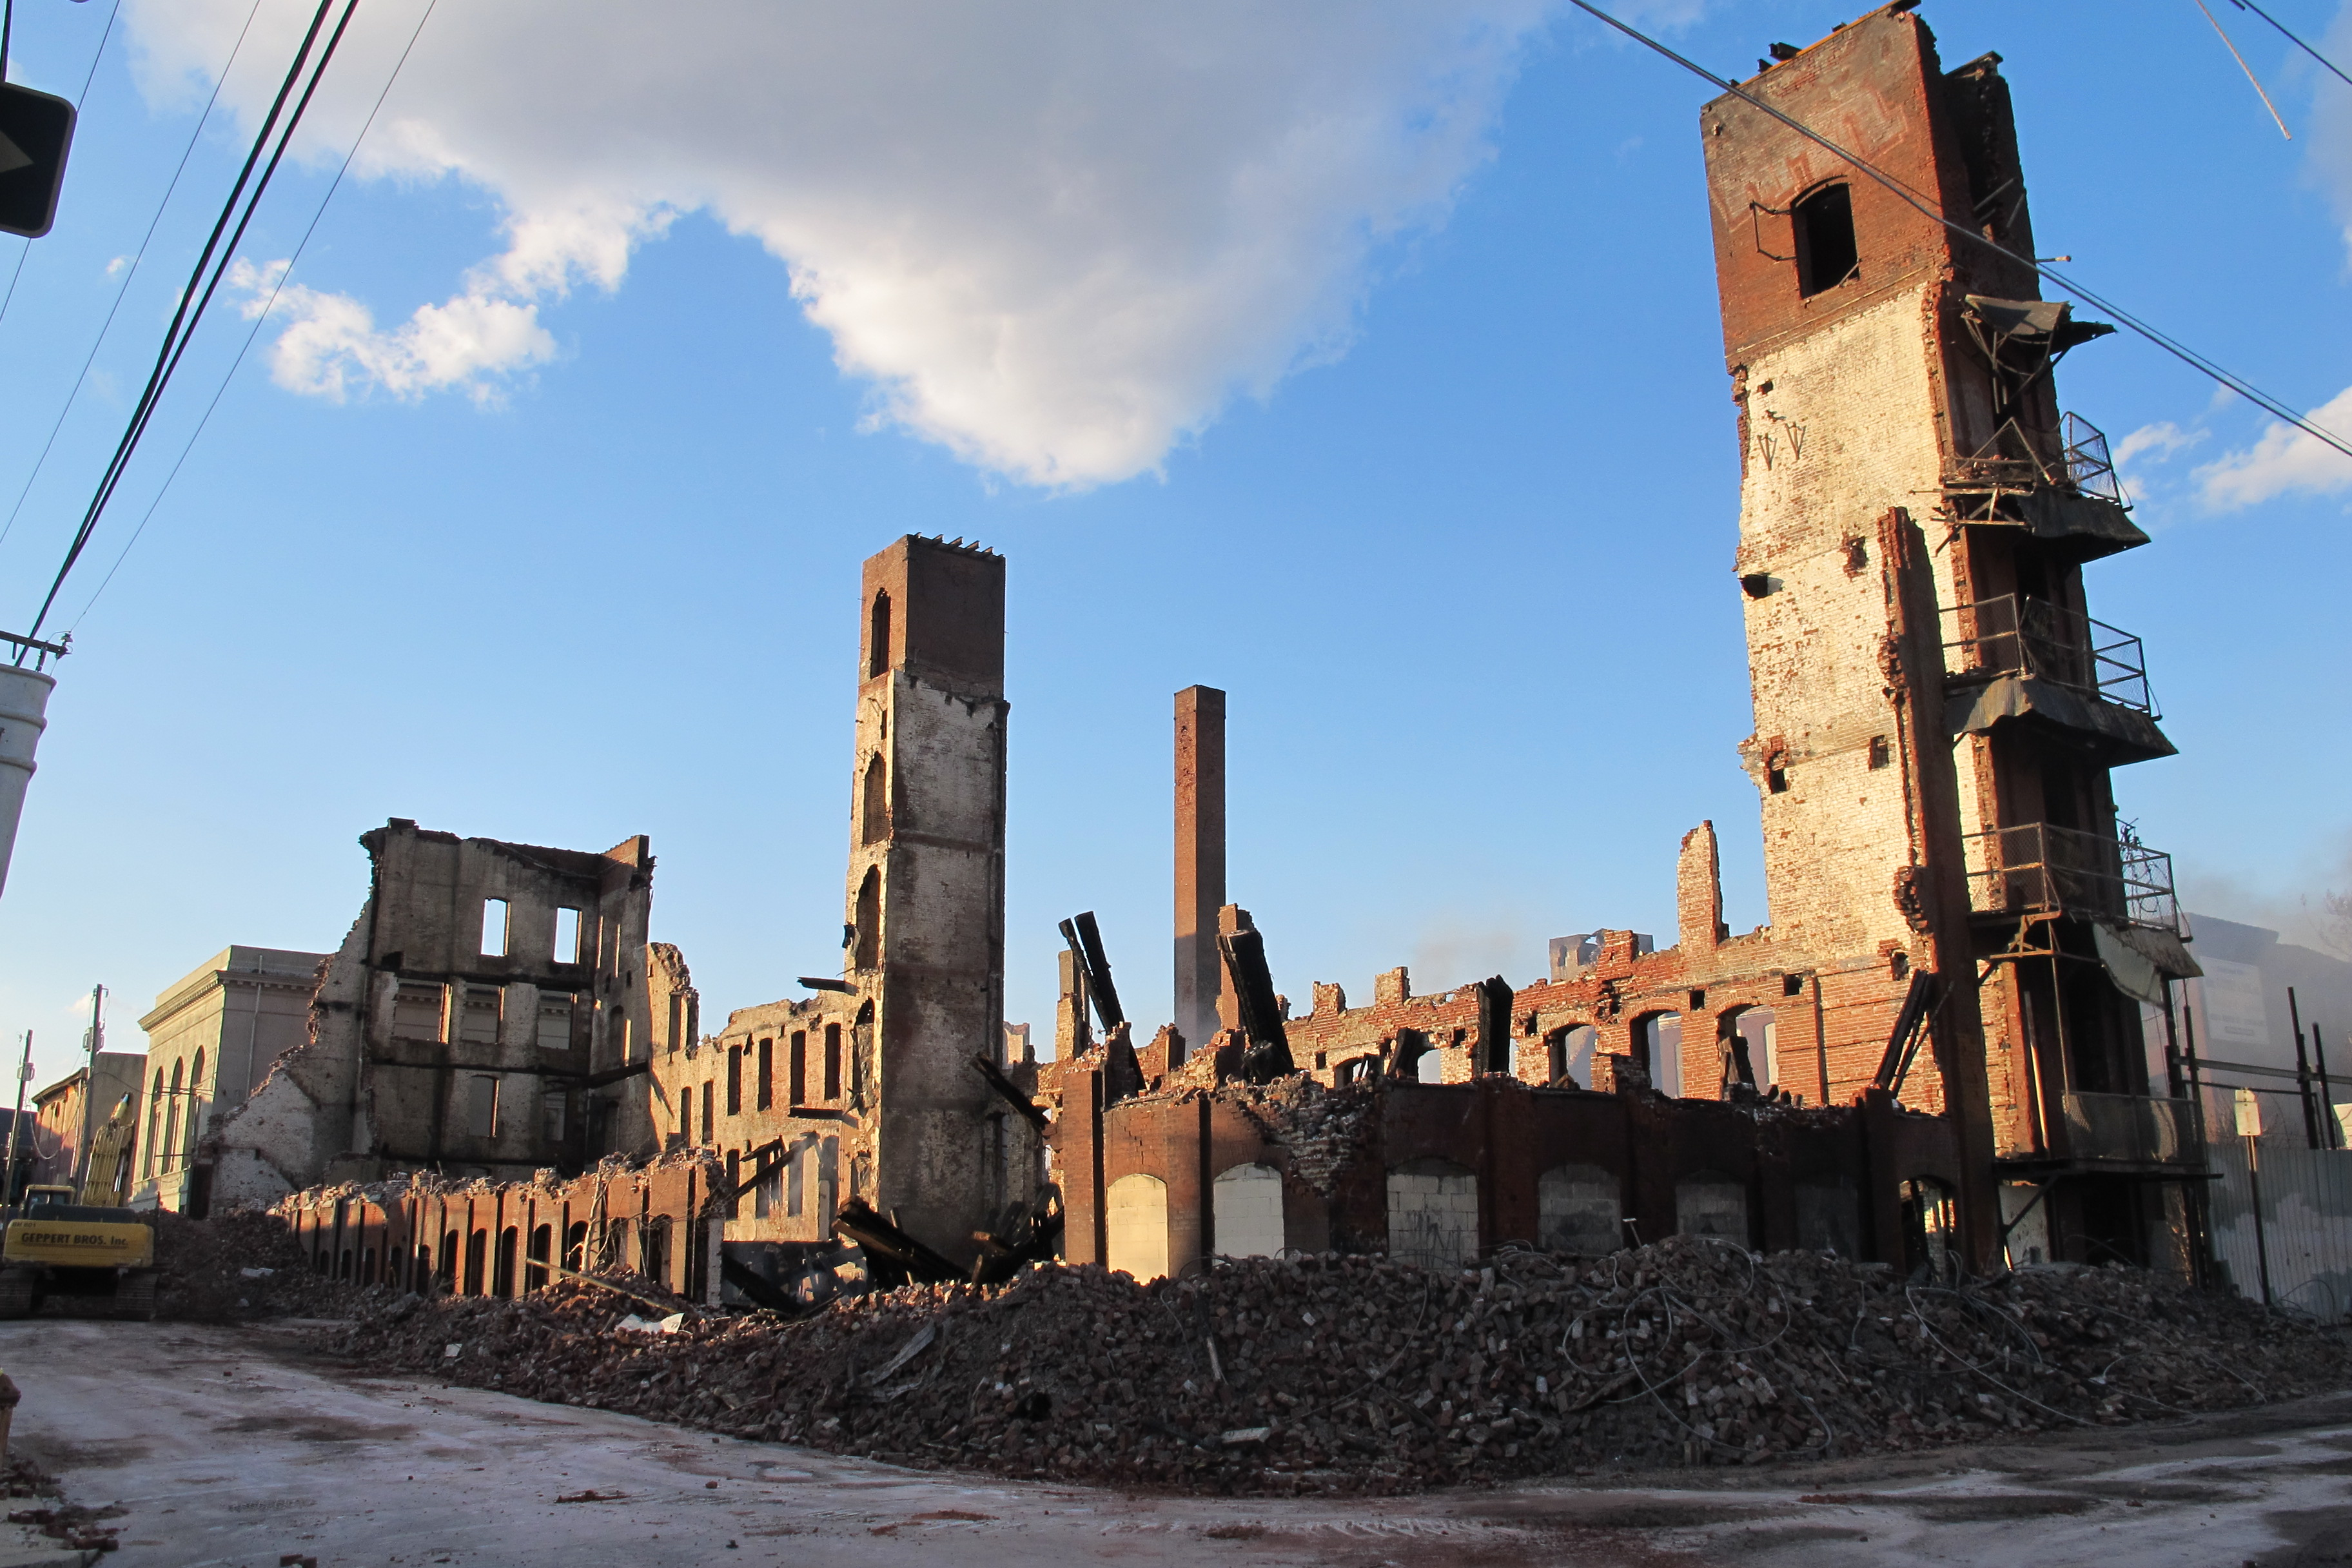 The former Buck Hosiery factory's rubble and charred remains.